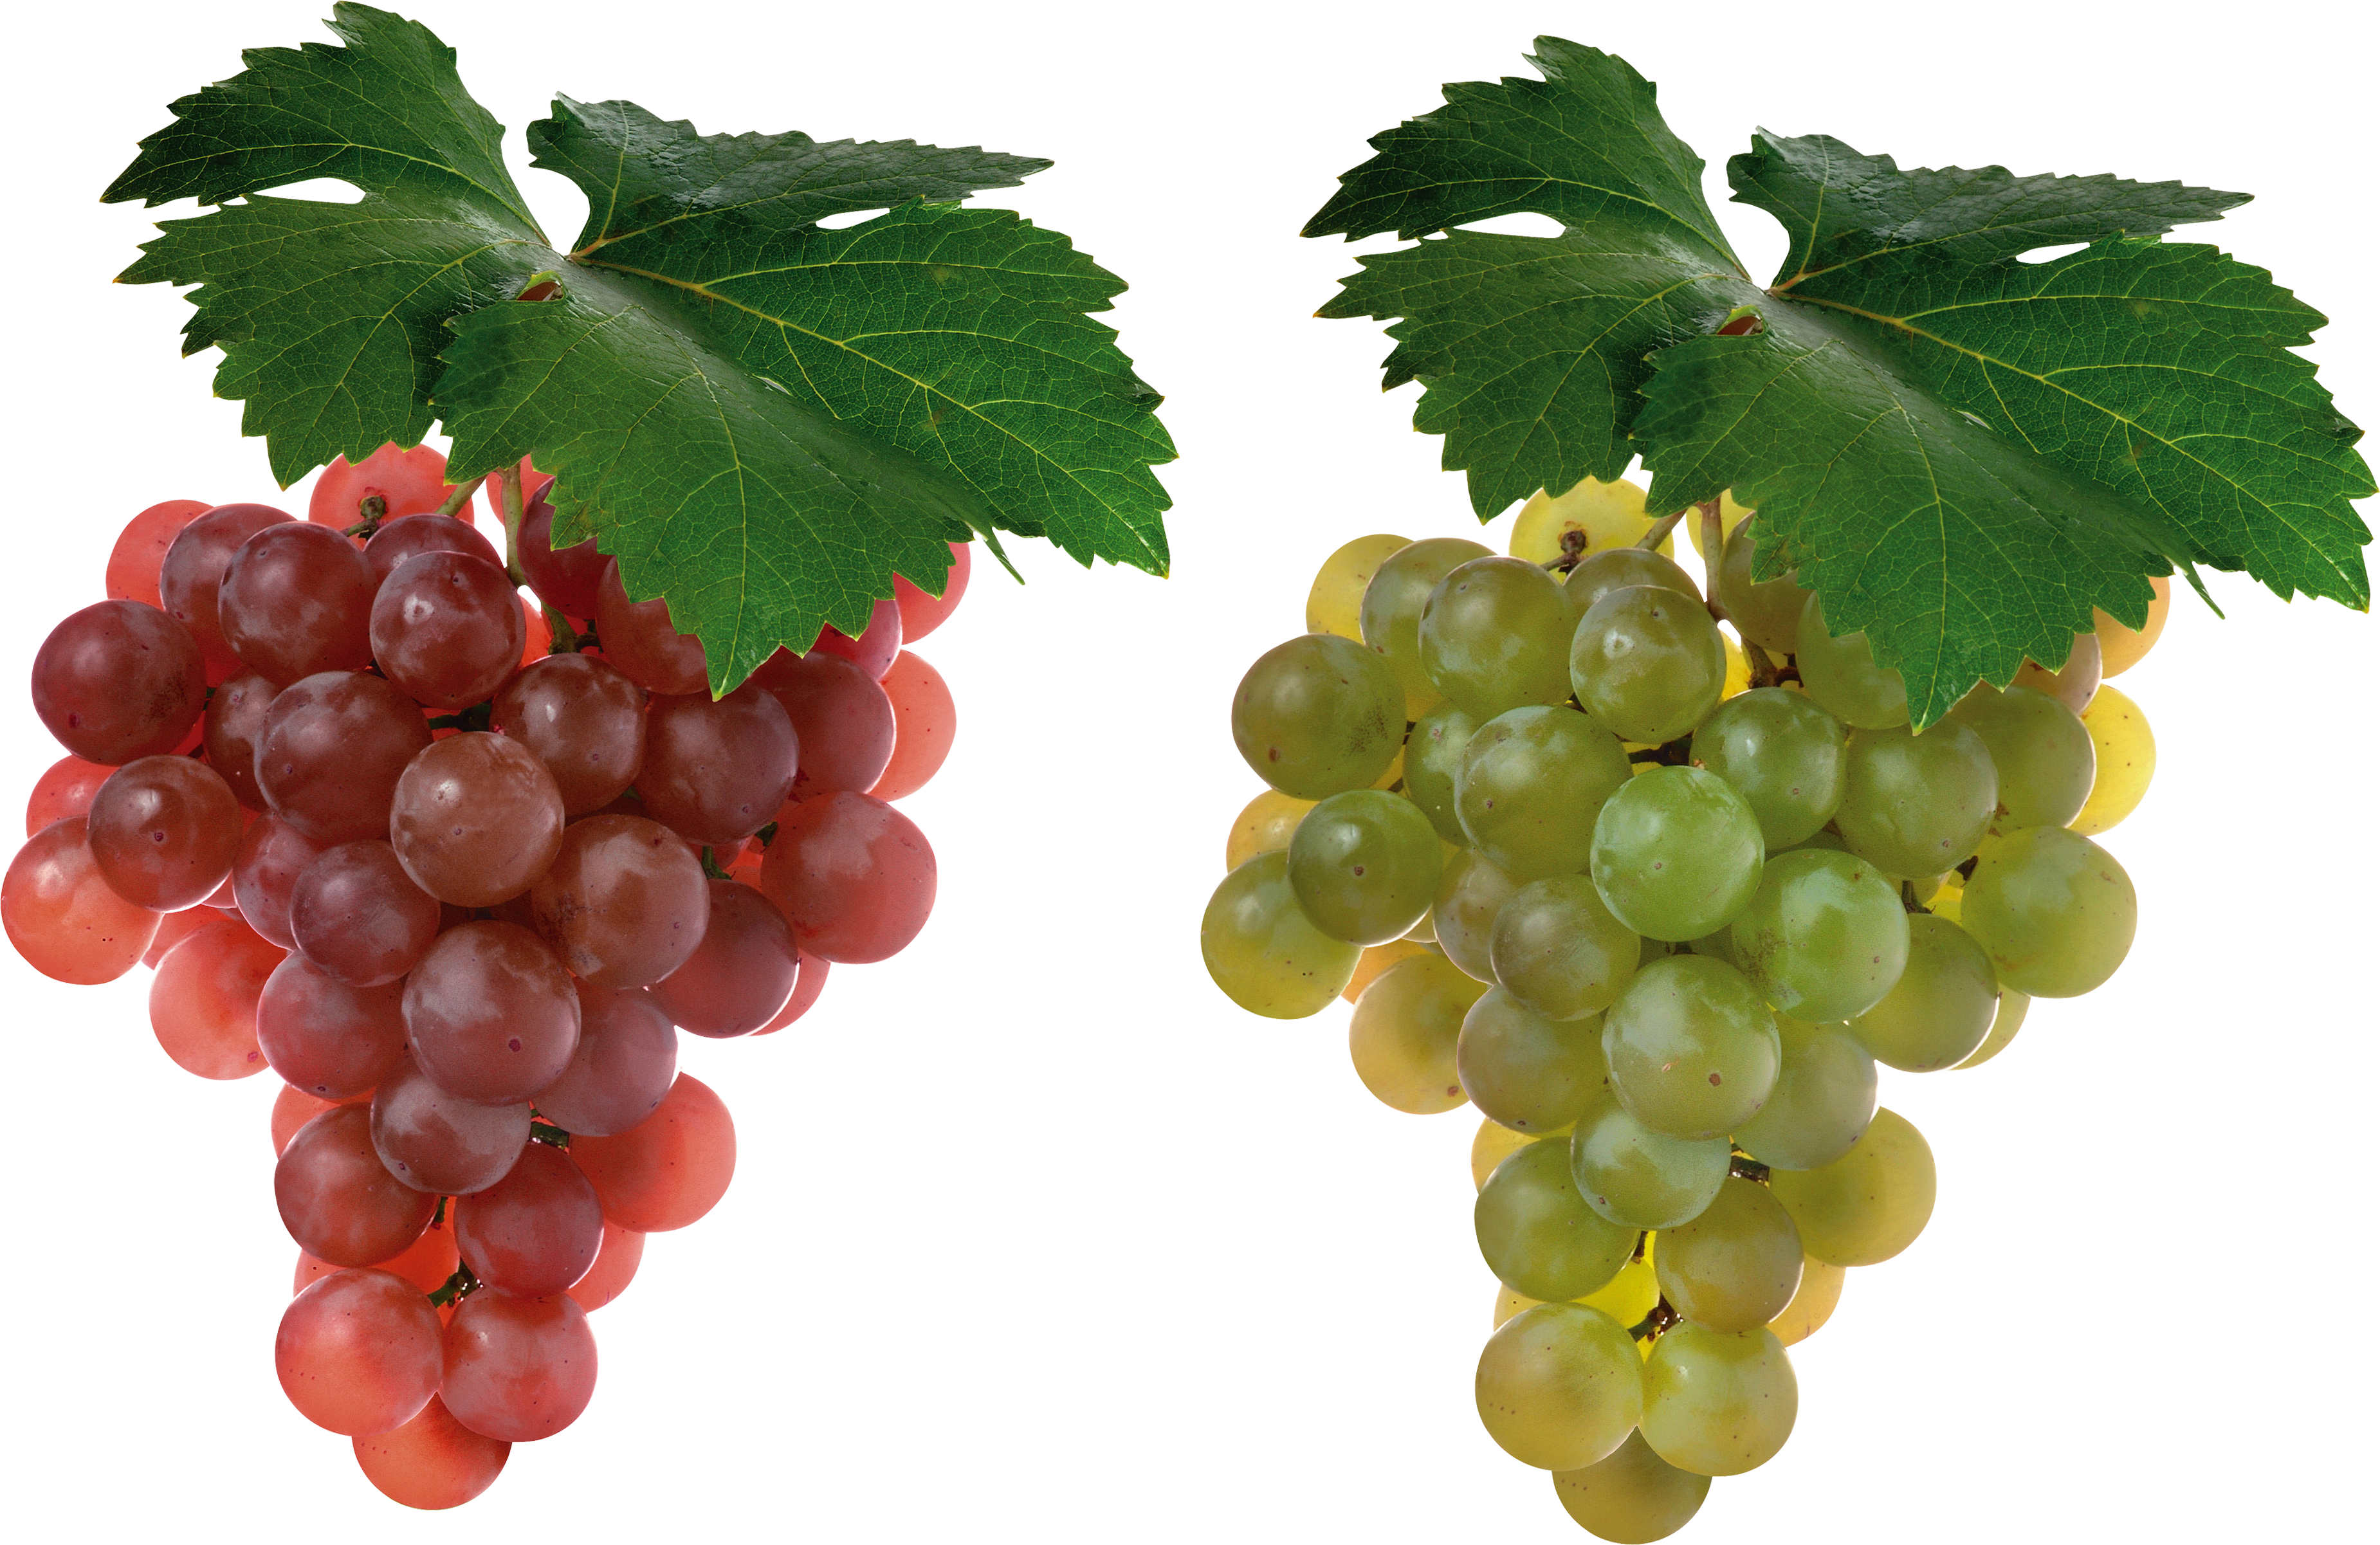 Transparent grapes isolated. Png image purepng free